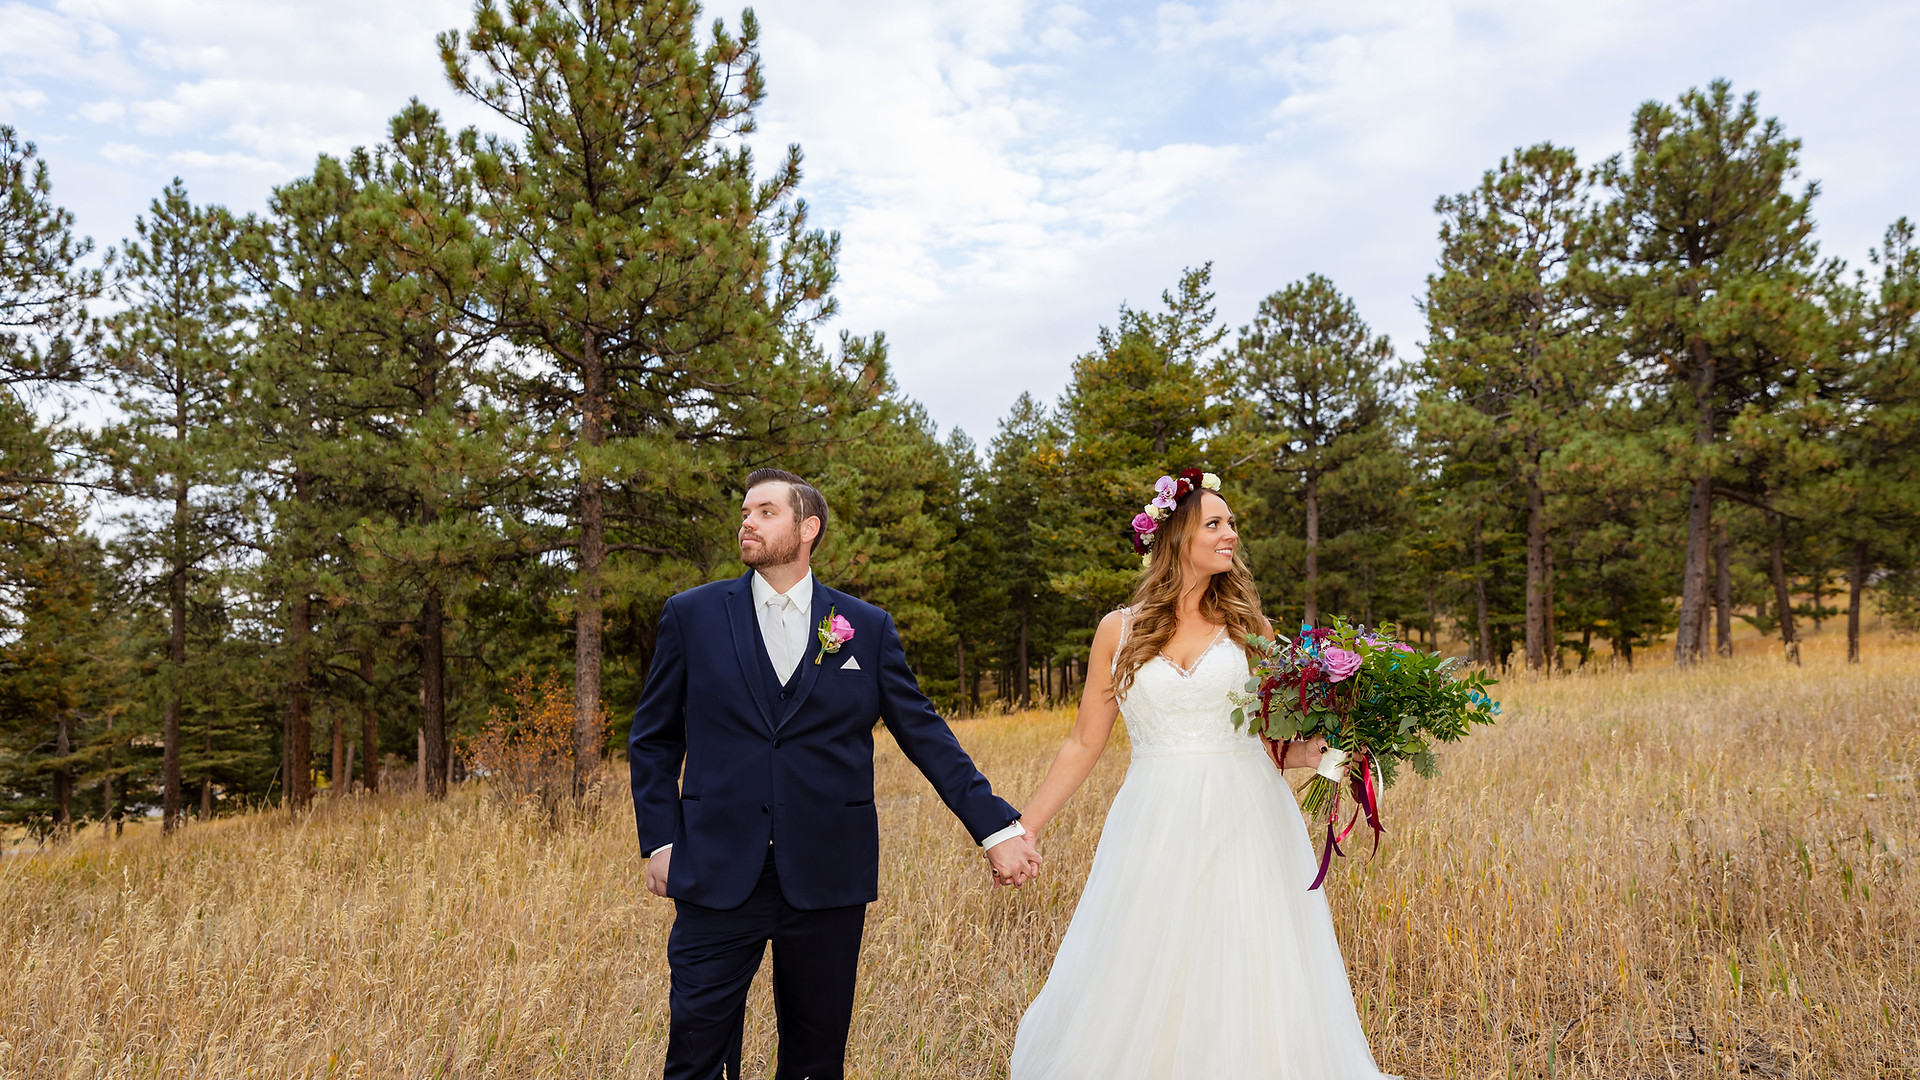 Jessica + Patrick - Colorado Wedding Pho